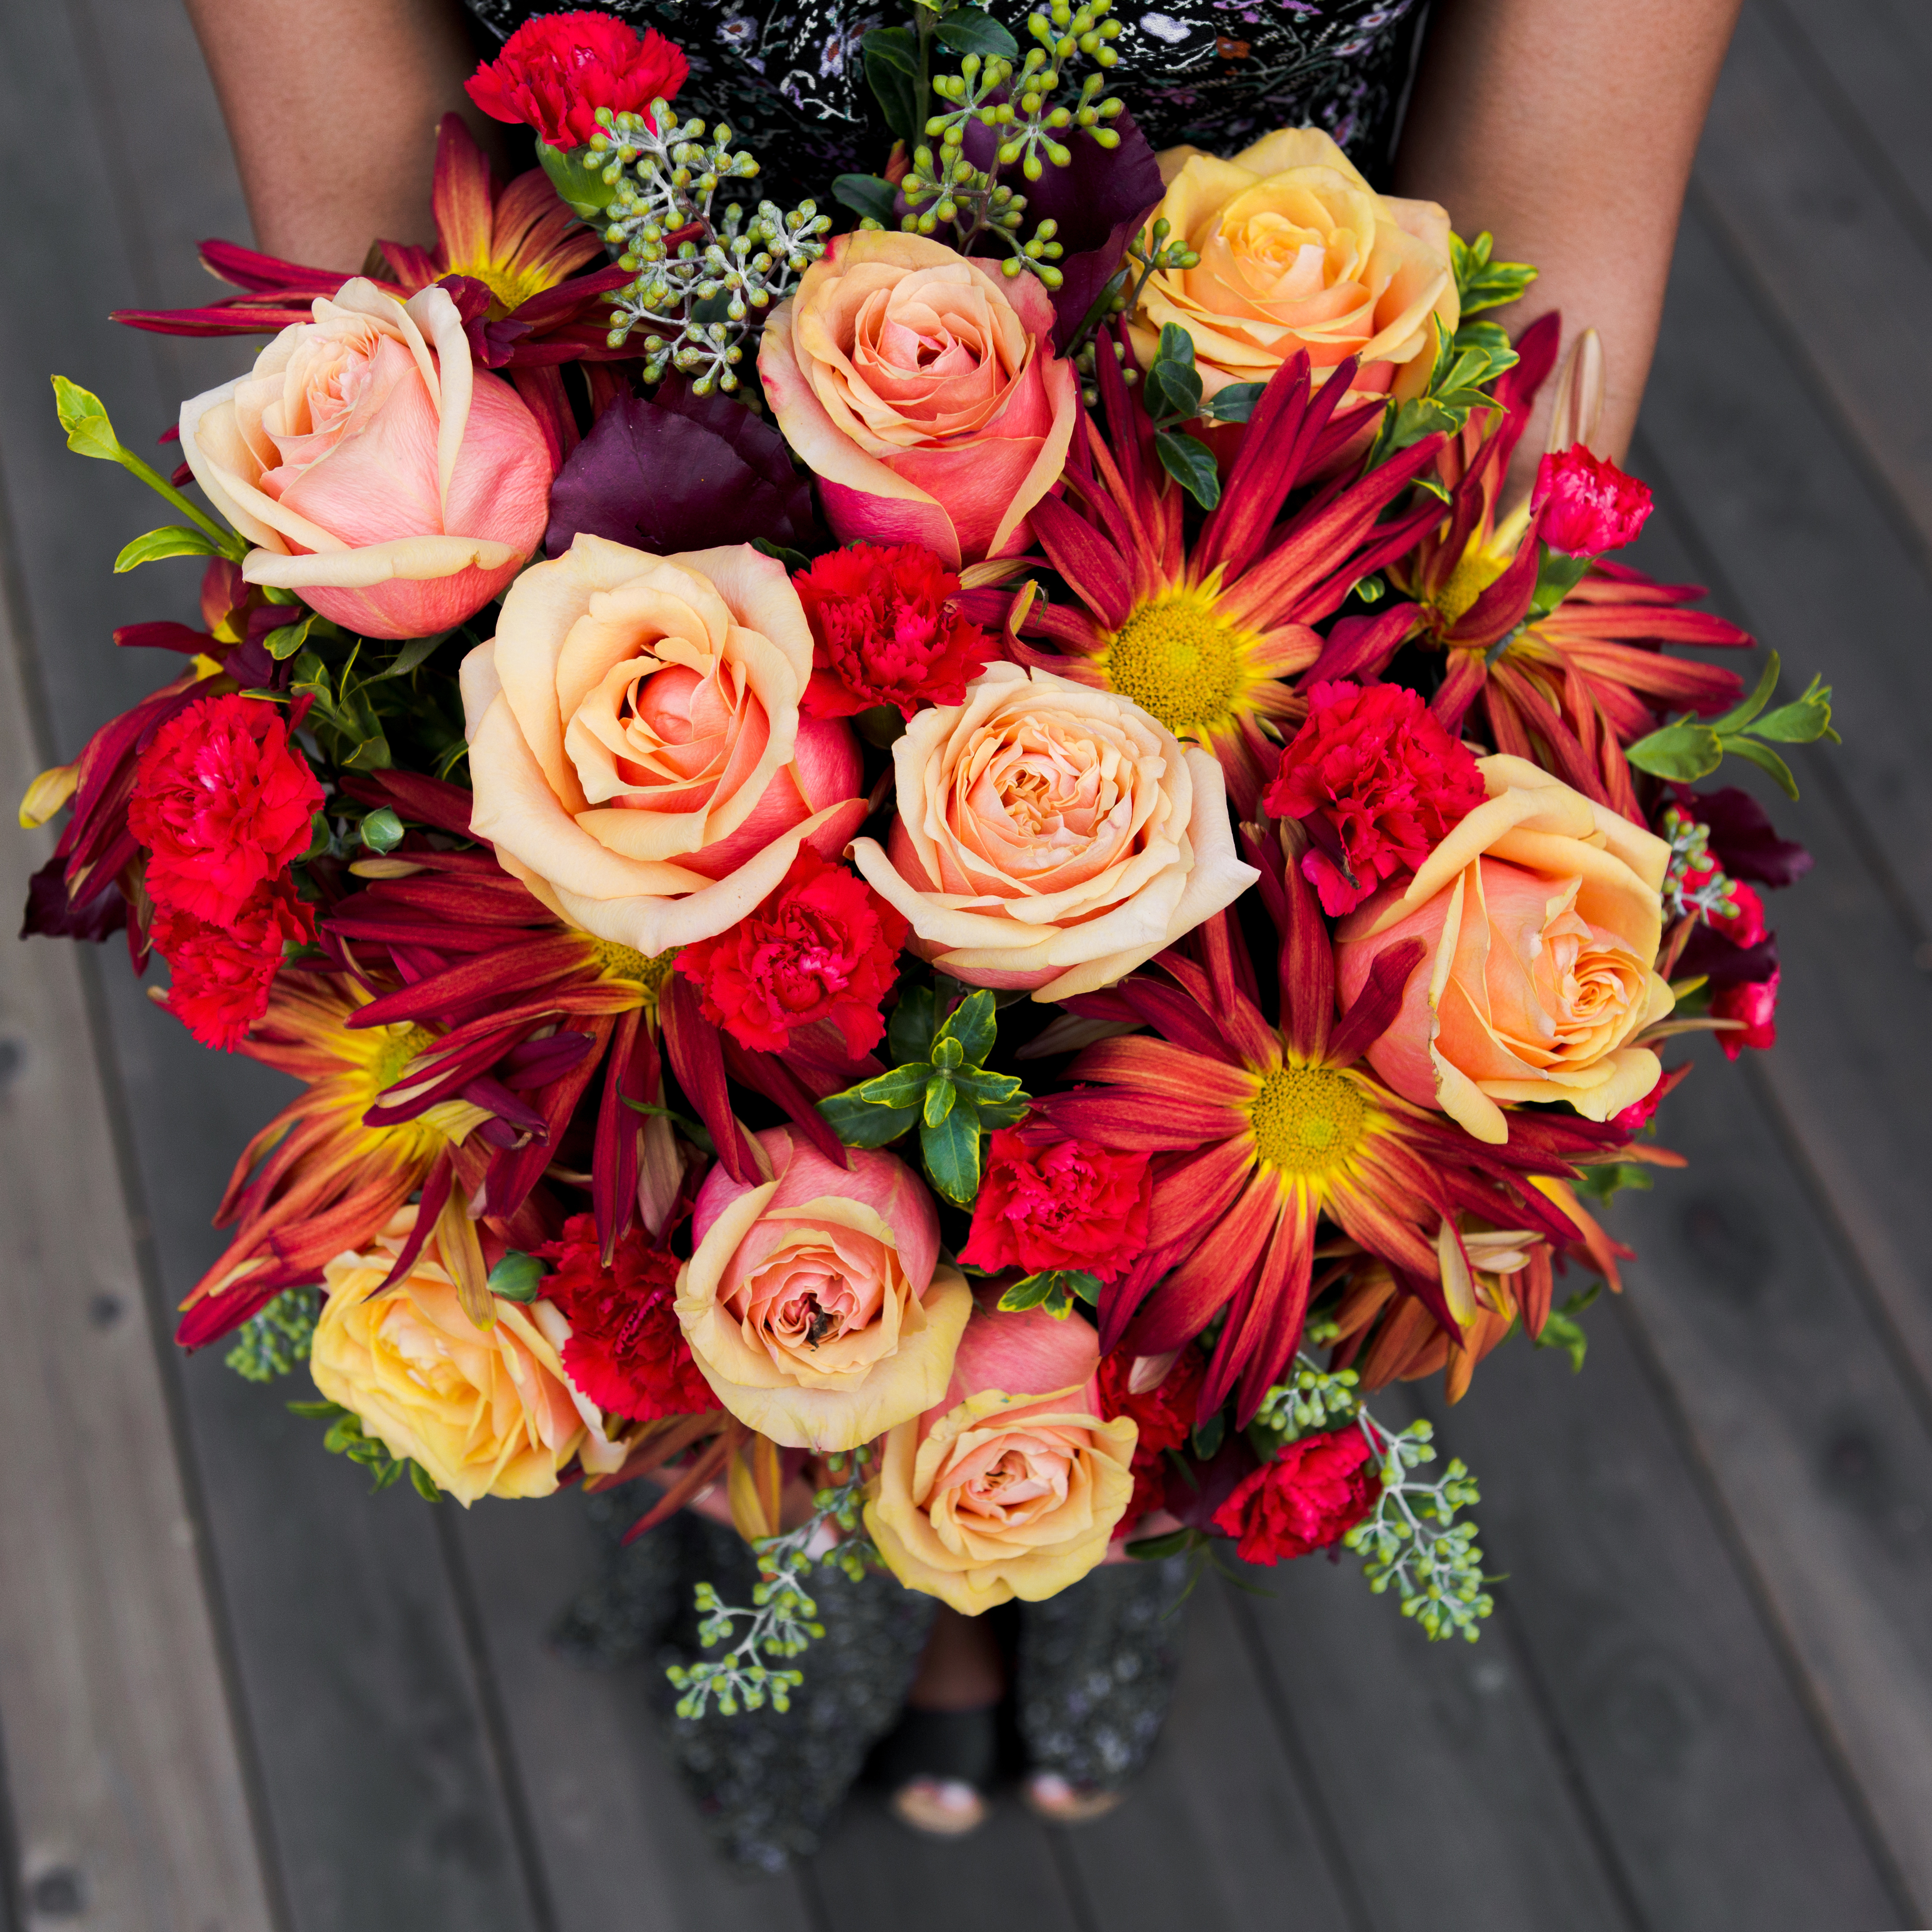 orange roses, carnations, and mums in burnt orange crock